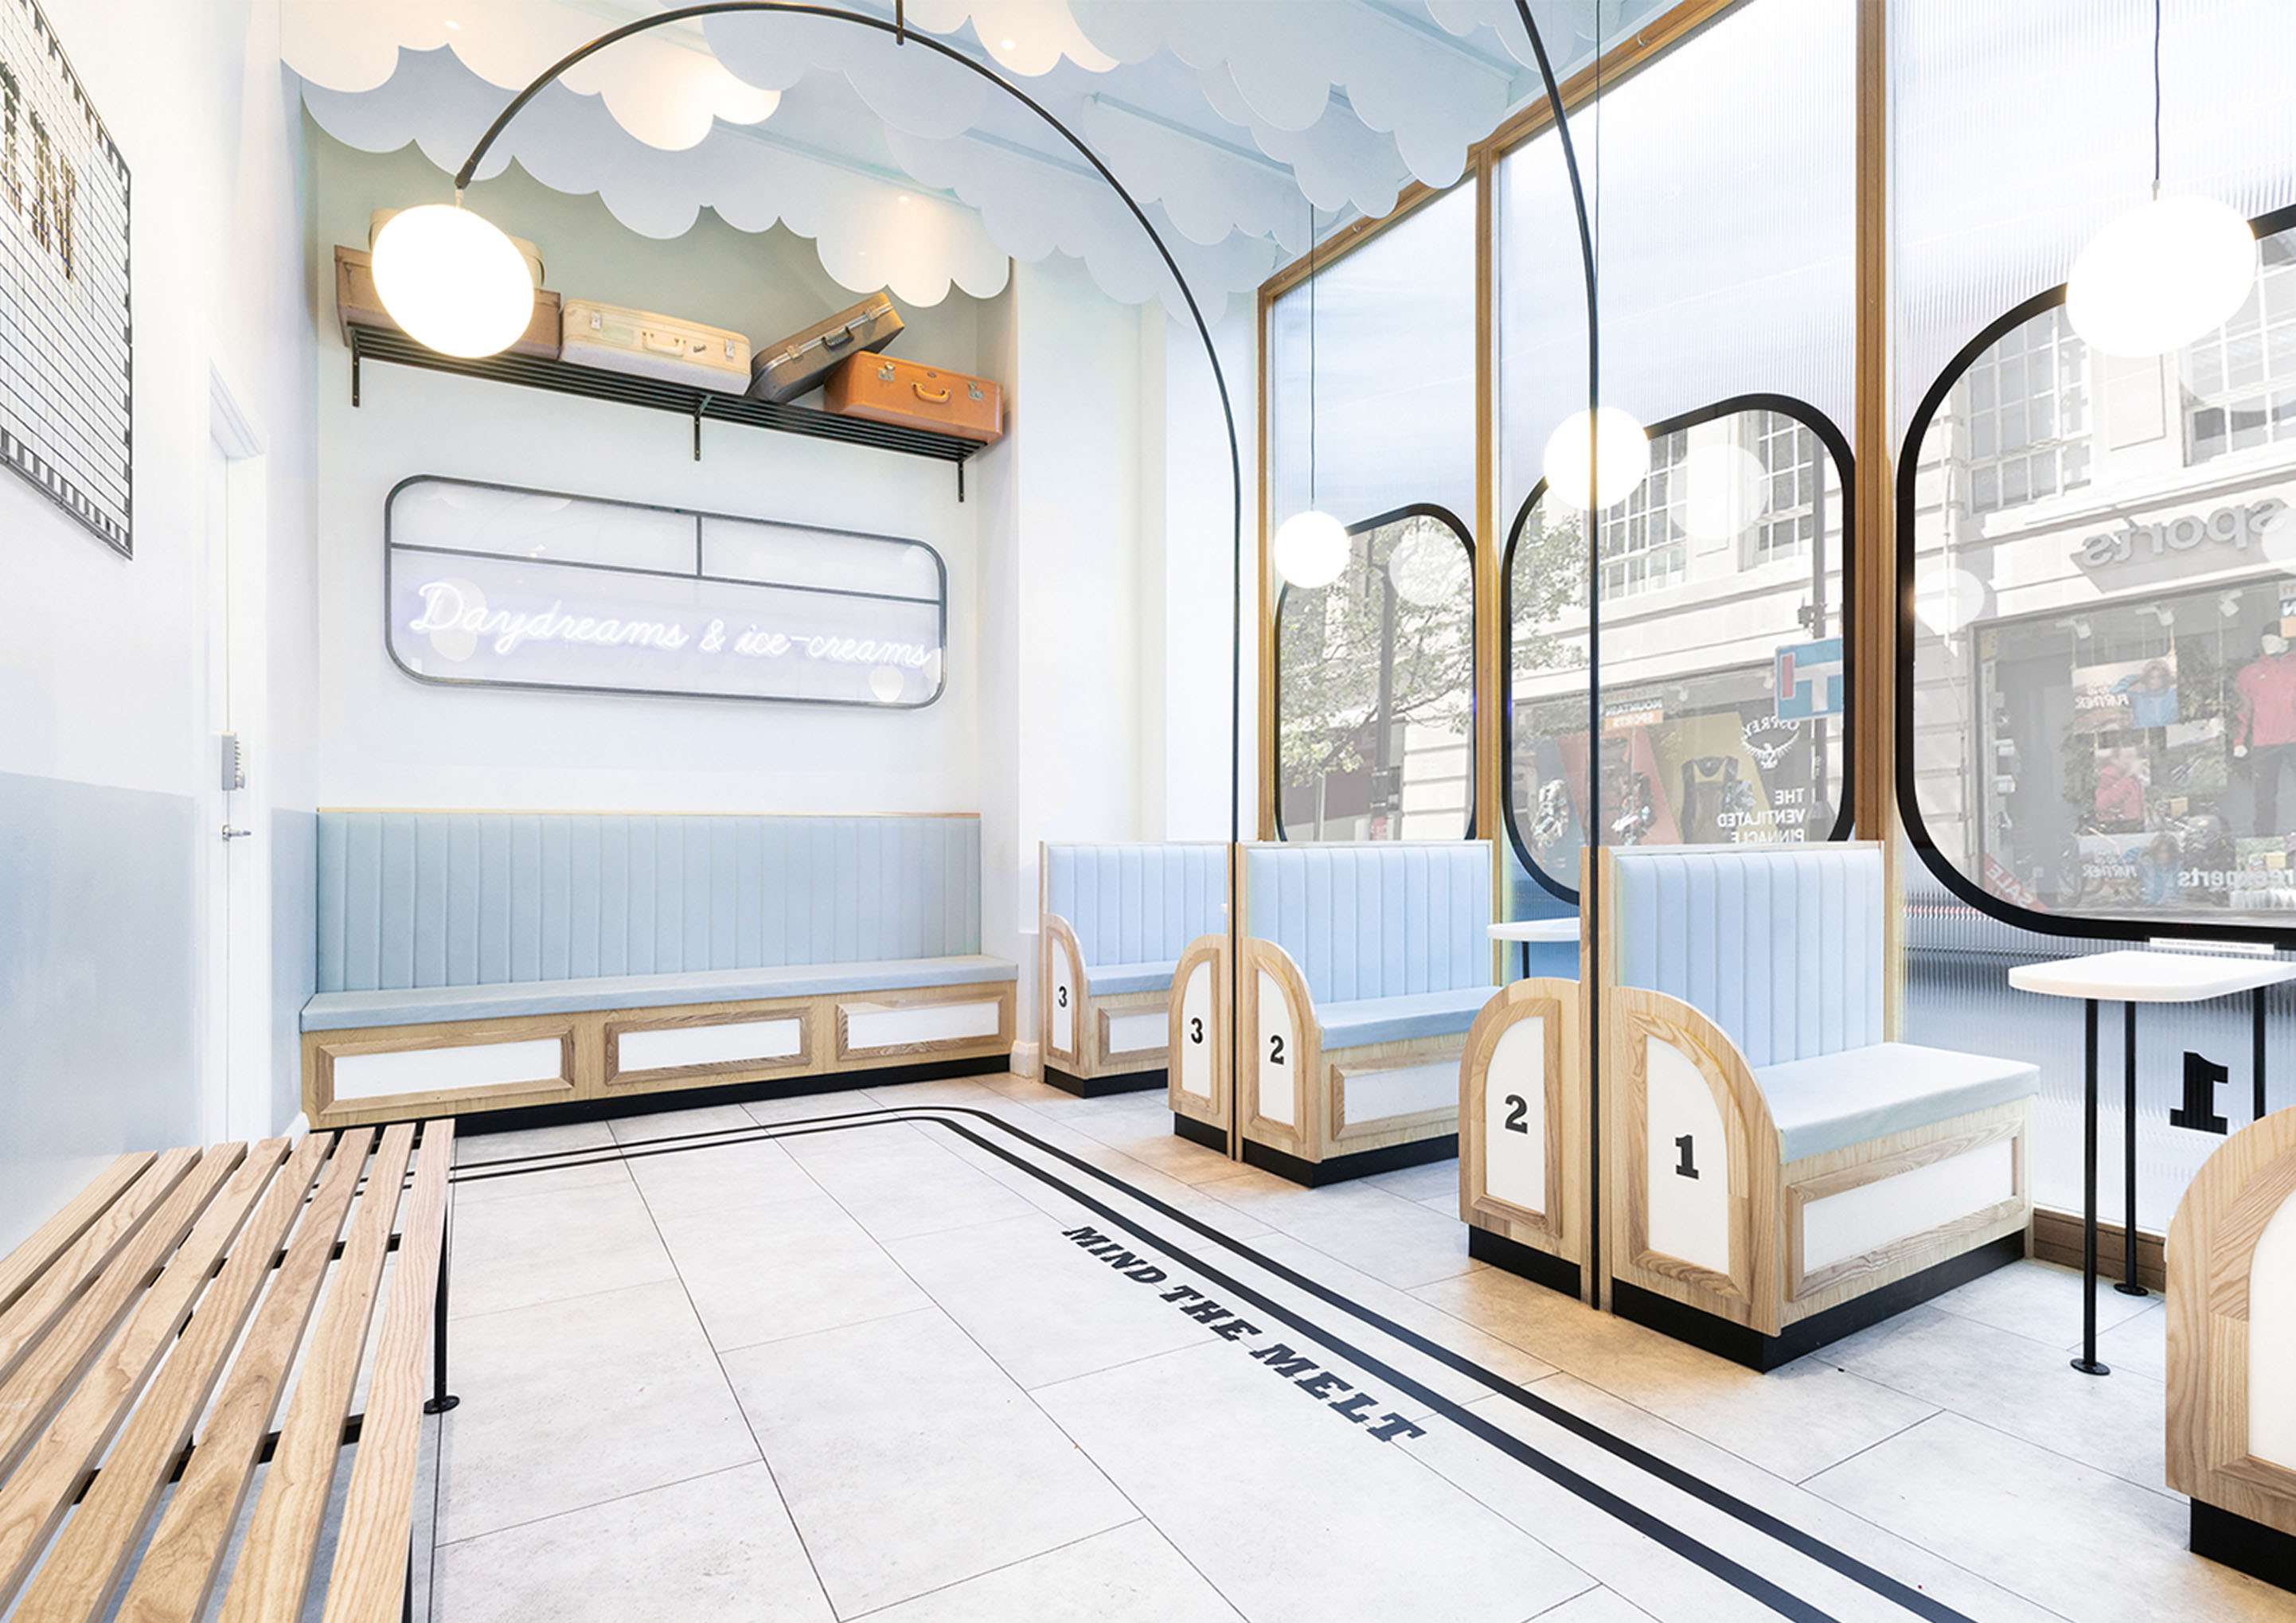 Milk Train, la gelateria vagone